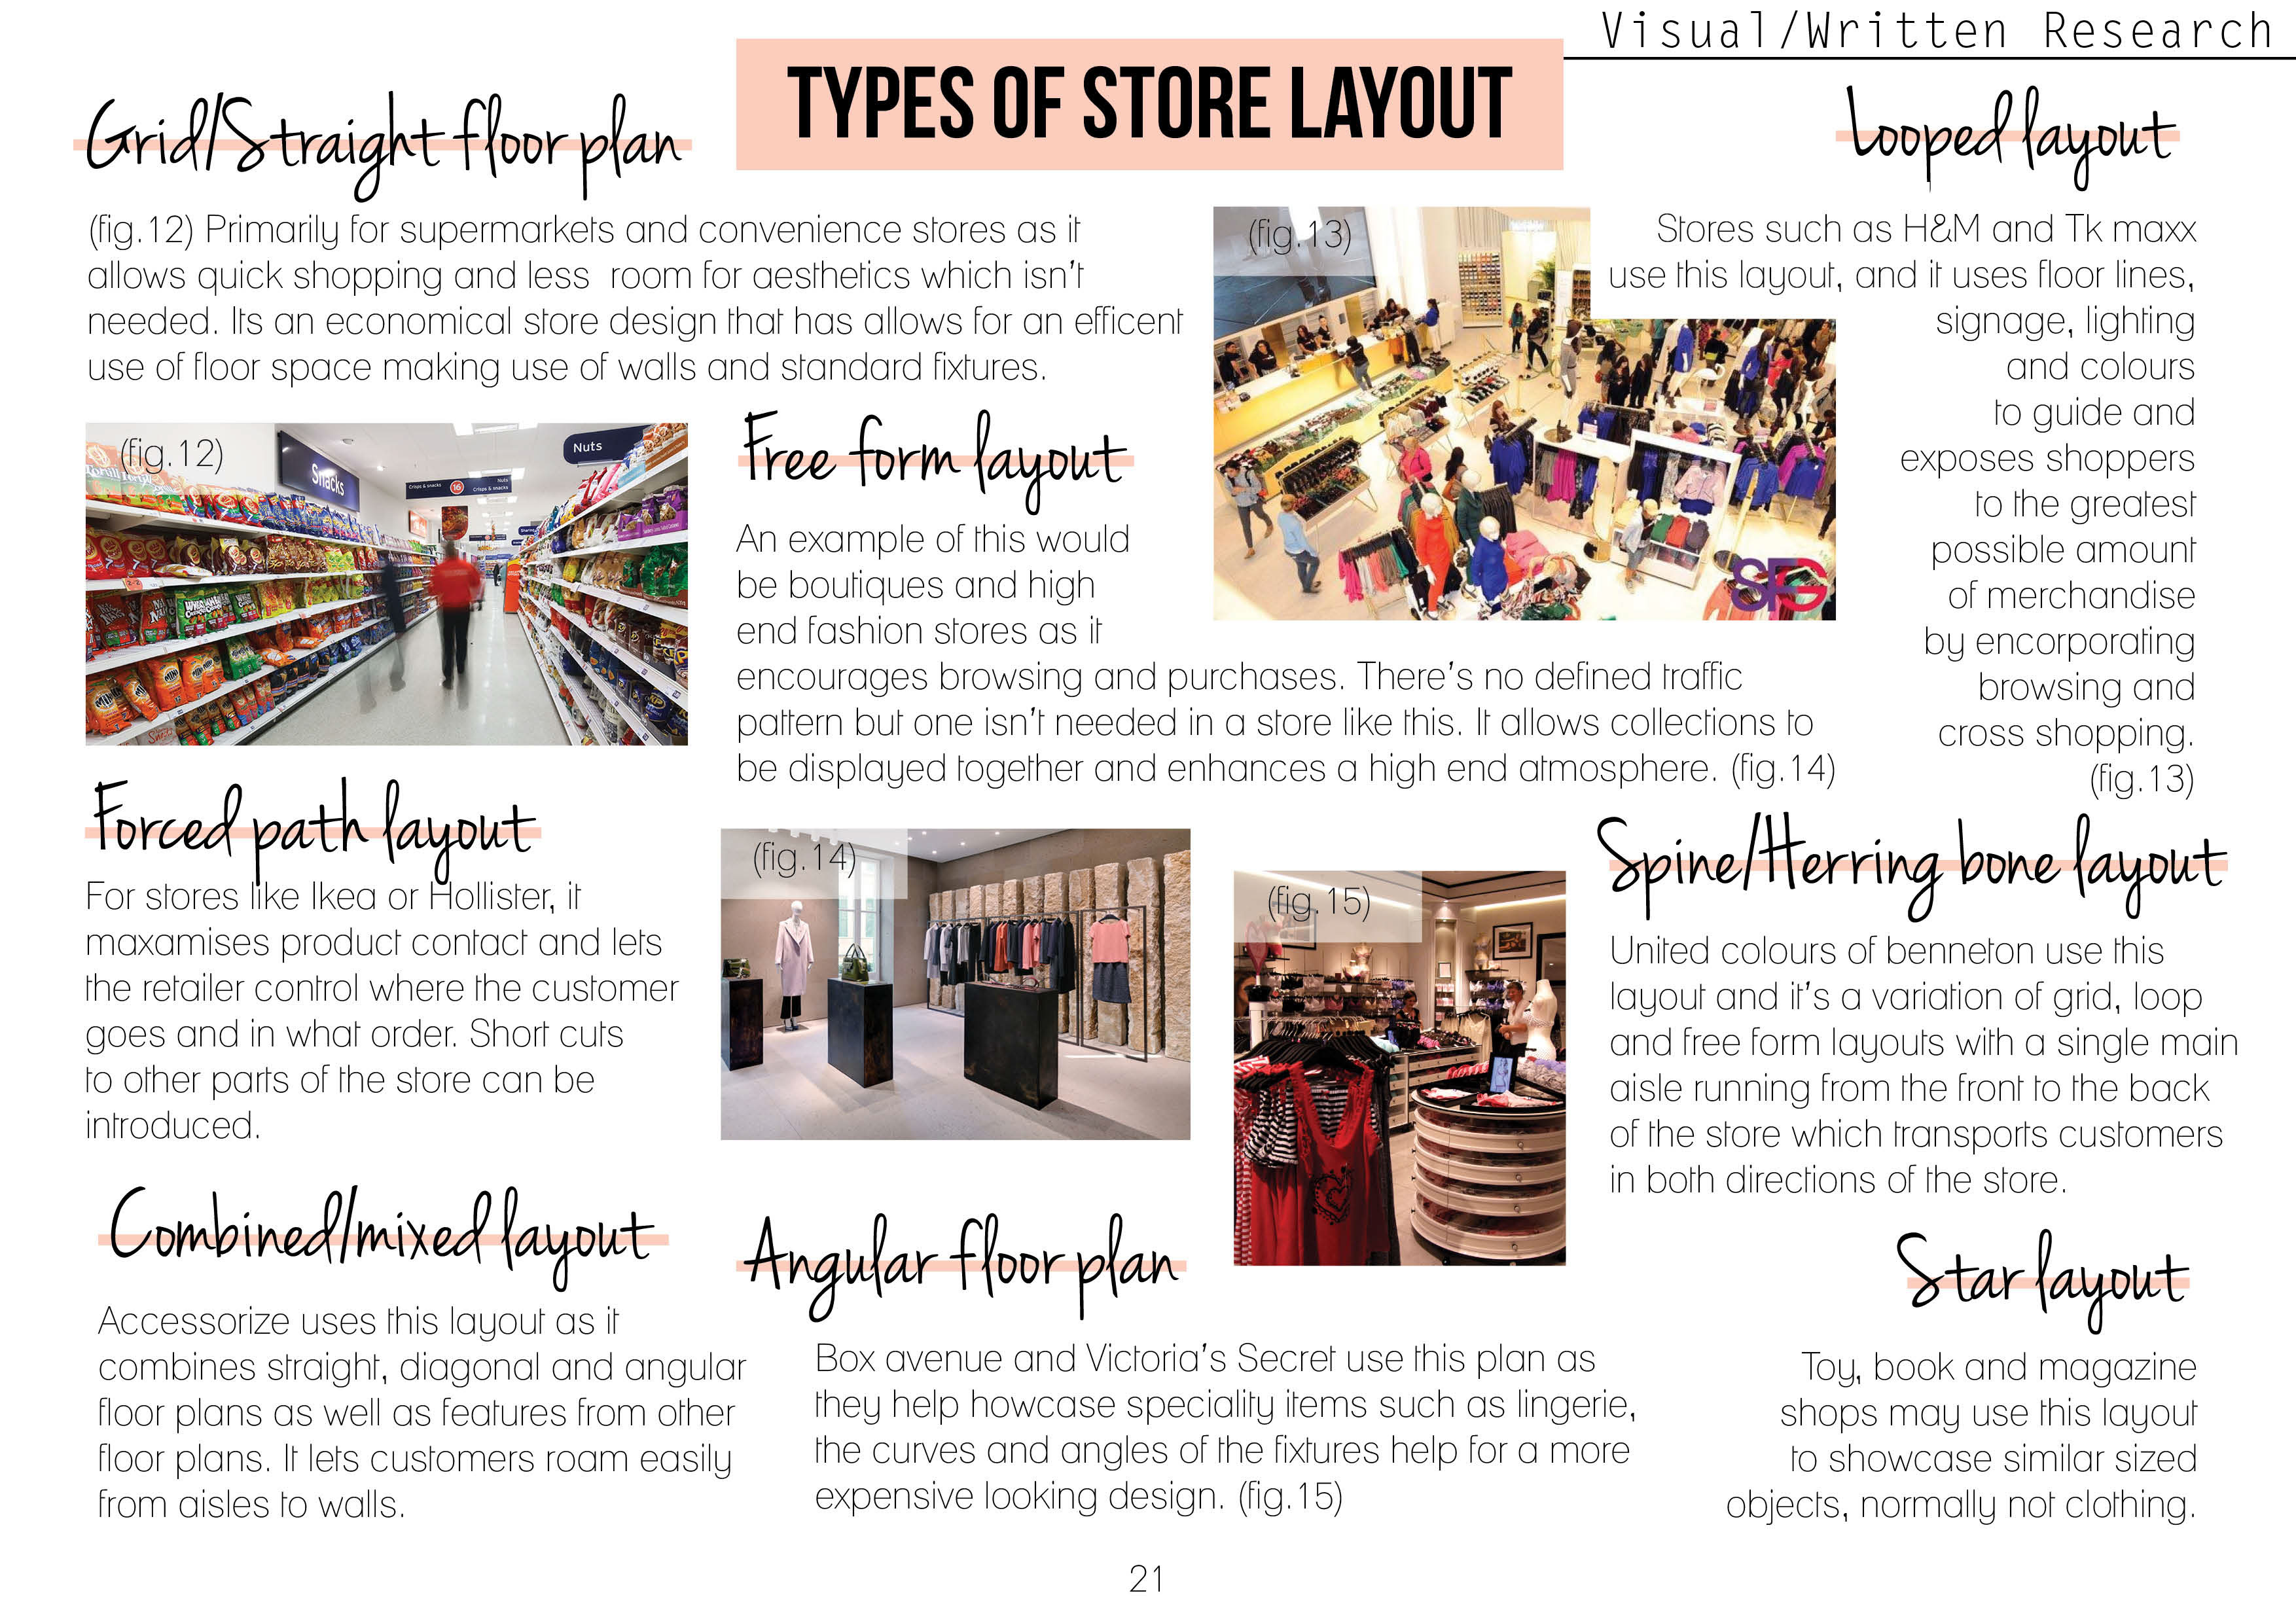 store design and visual merchandising on customer purchase Store layout, design, and visual merchandising that loops around the store to guide customer traffic around in the store where customers purchase.